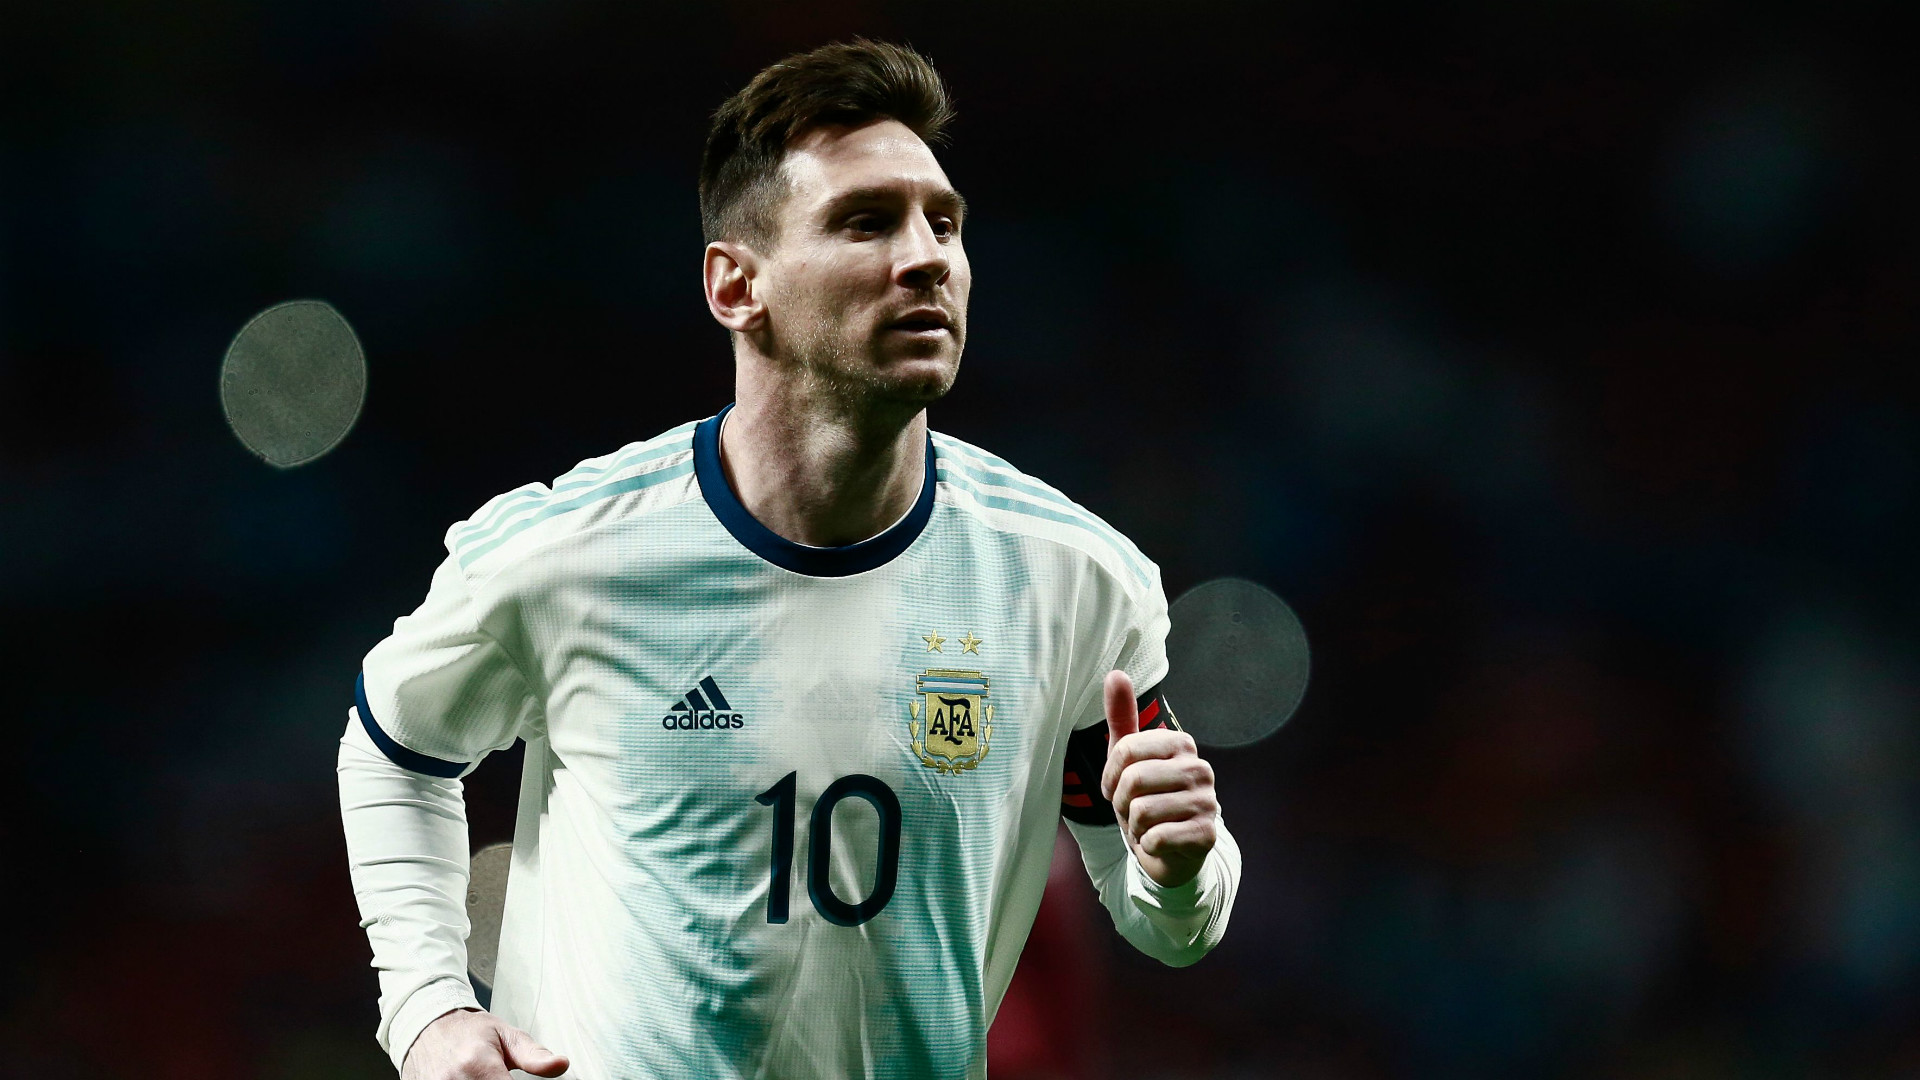 Lionel Messi Argentina Venezuela Friendly 22032019